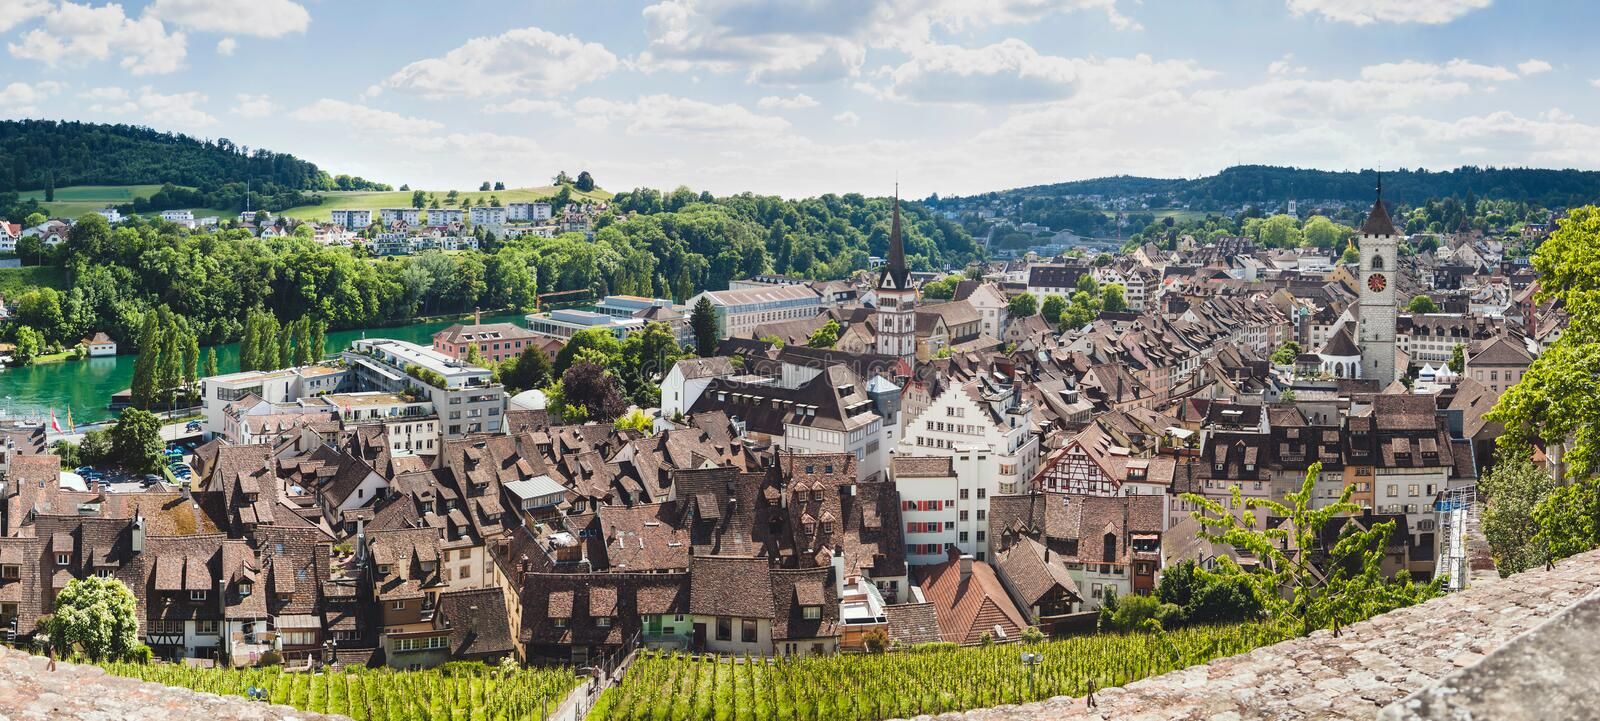 Panoramic view of Swiss town Schaffhausen. River Rhine. Europe royalty free stock image